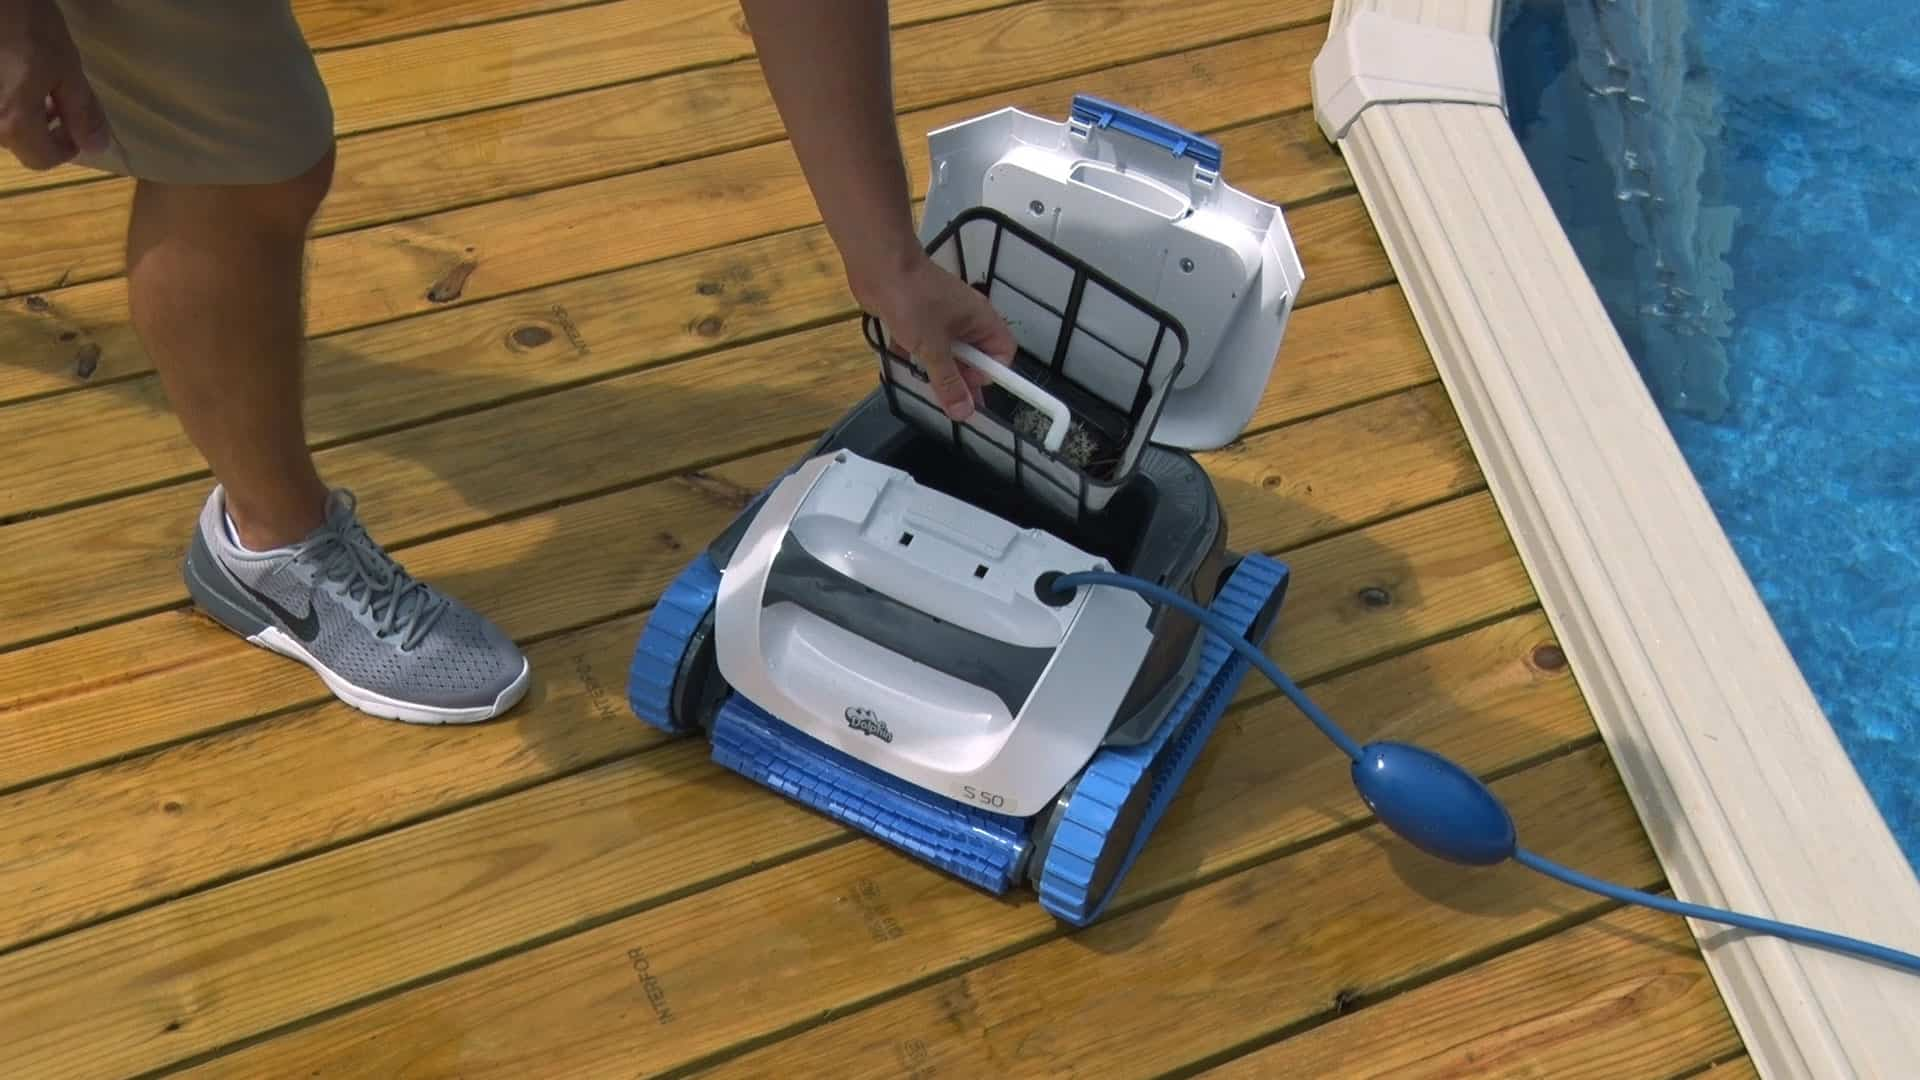 Dolphin S50 Robotic Pool Cleaner Filter